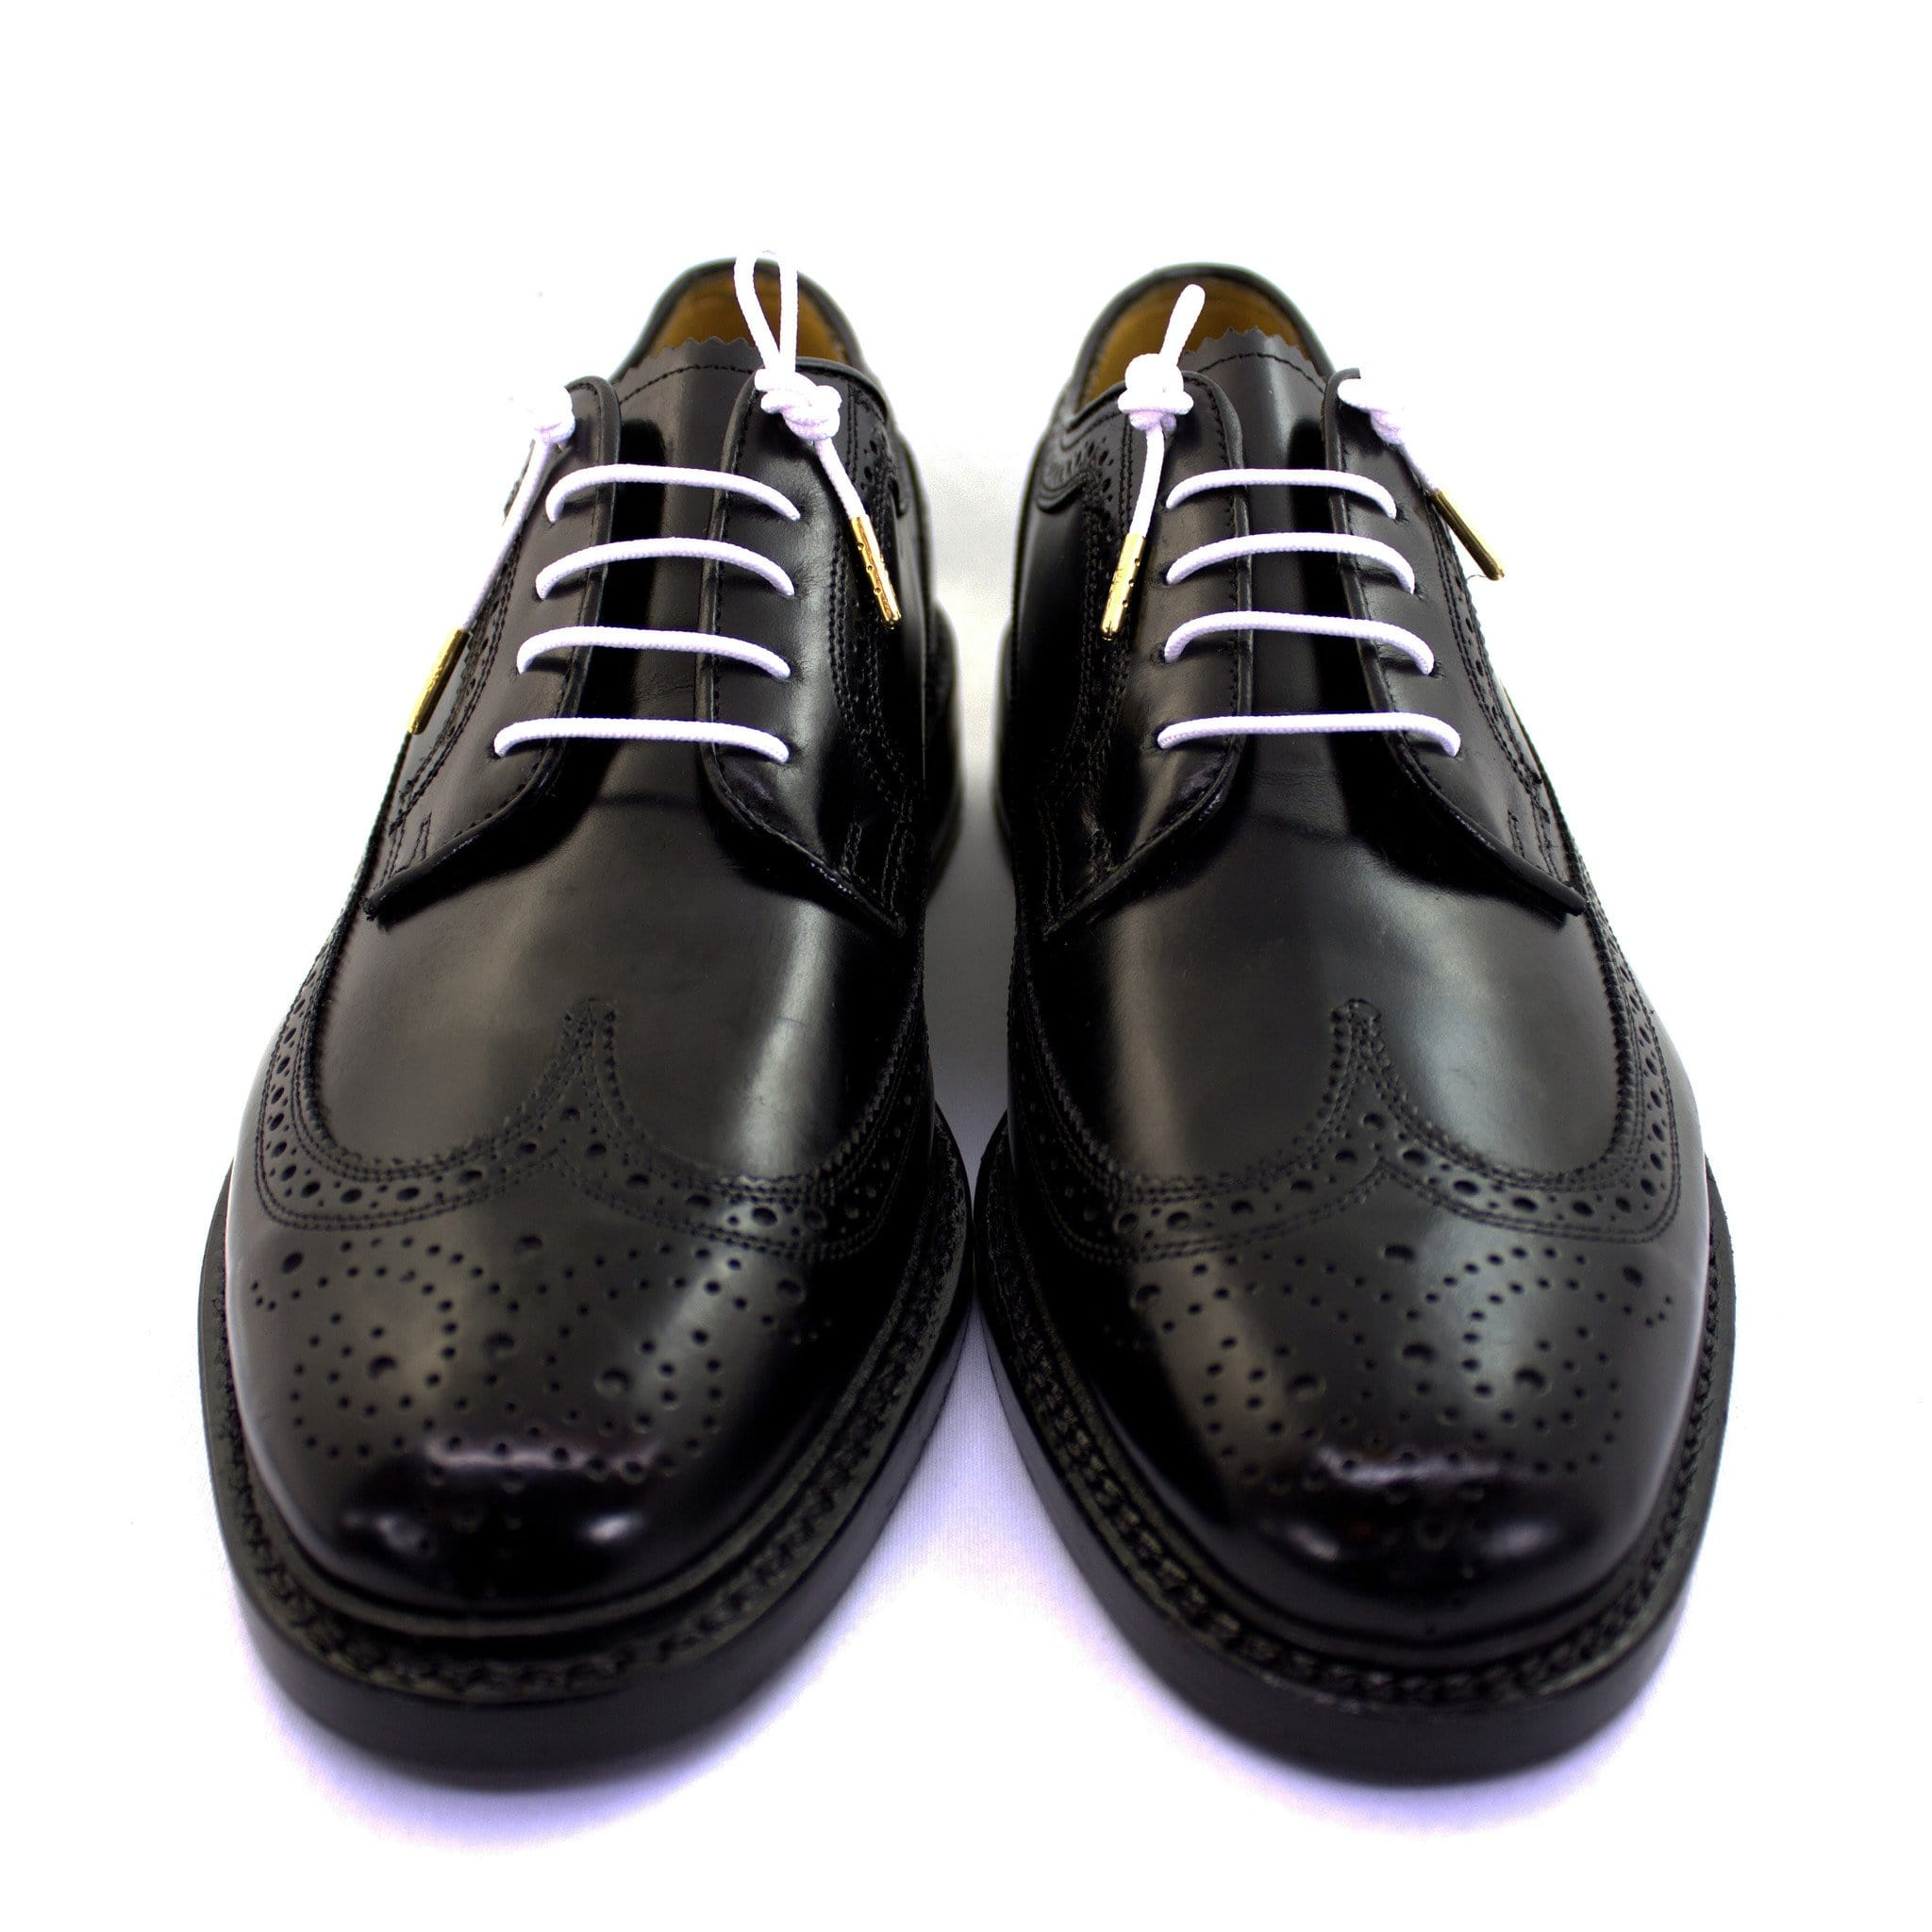 "Bright white laces for dress shoes, Length: 32""/81cm-Stolen Riches"